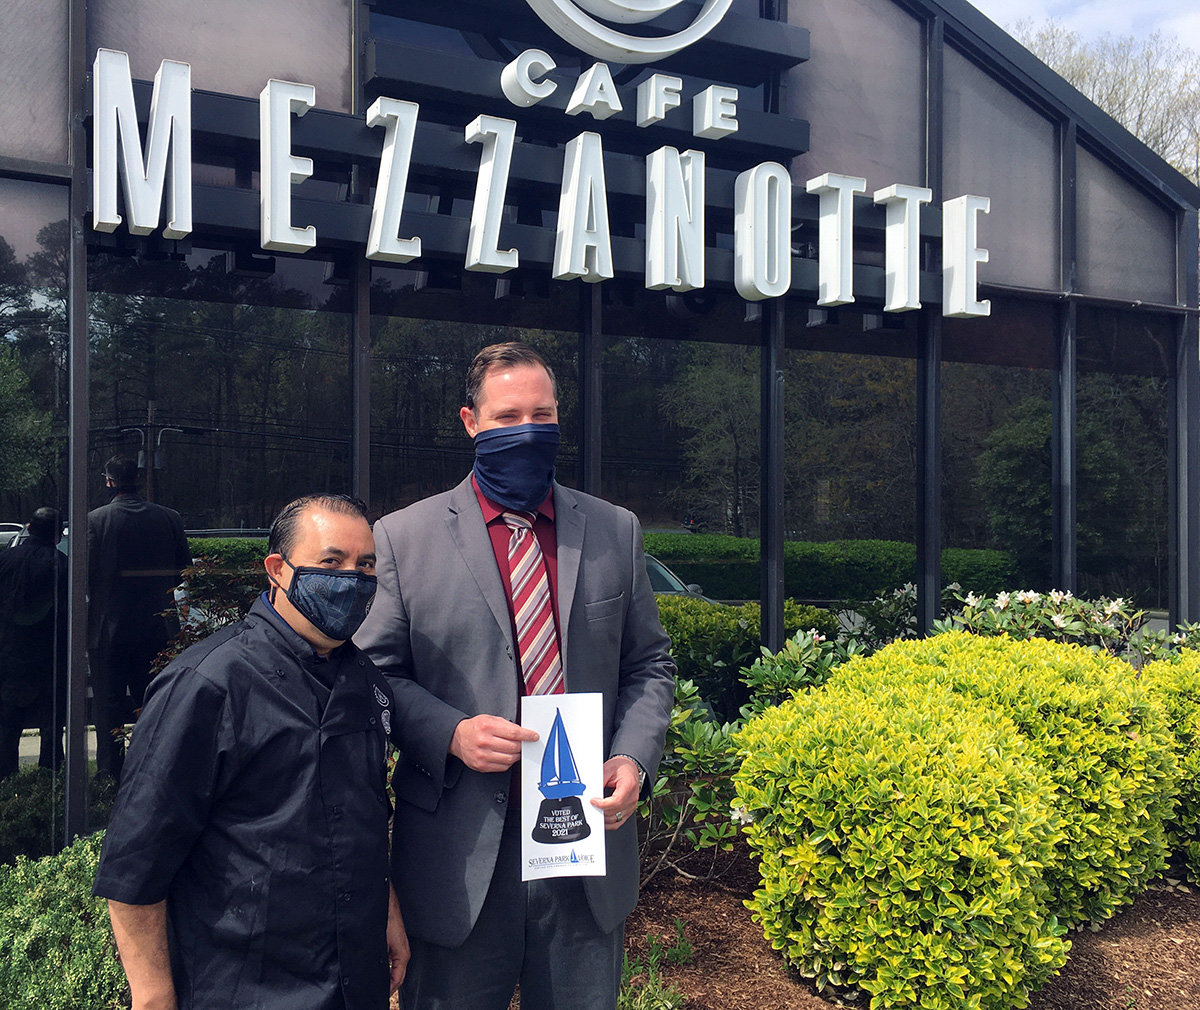 Cafe Mezzanotte was voted Best Italian and was also recognized for Best Special Occasion.